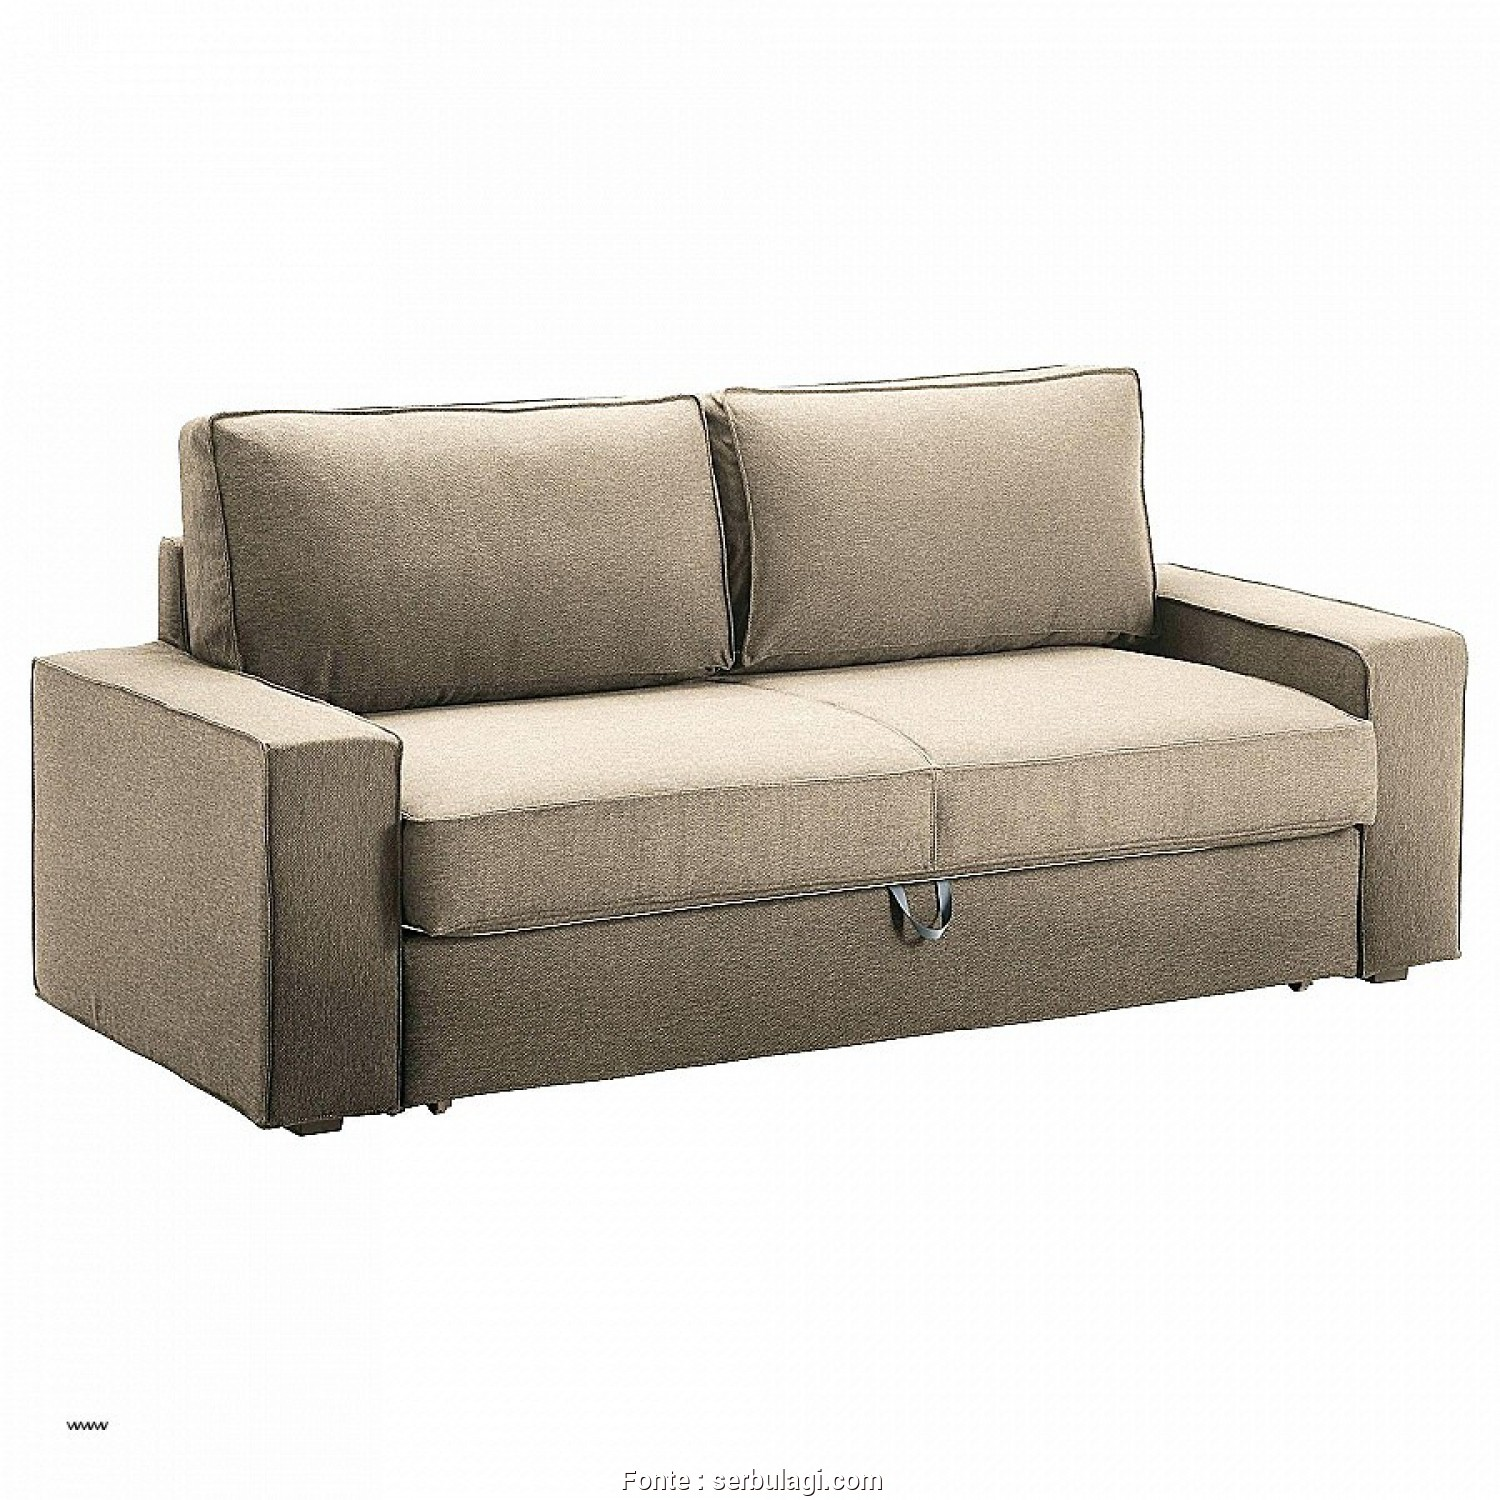 Beddinge Ikea Lovas, Magnifico Ikea Housse Bz Best Sofa Inspirational Ikea Beddinge Lovas Sofa, Hi, Wallpaper Photographie